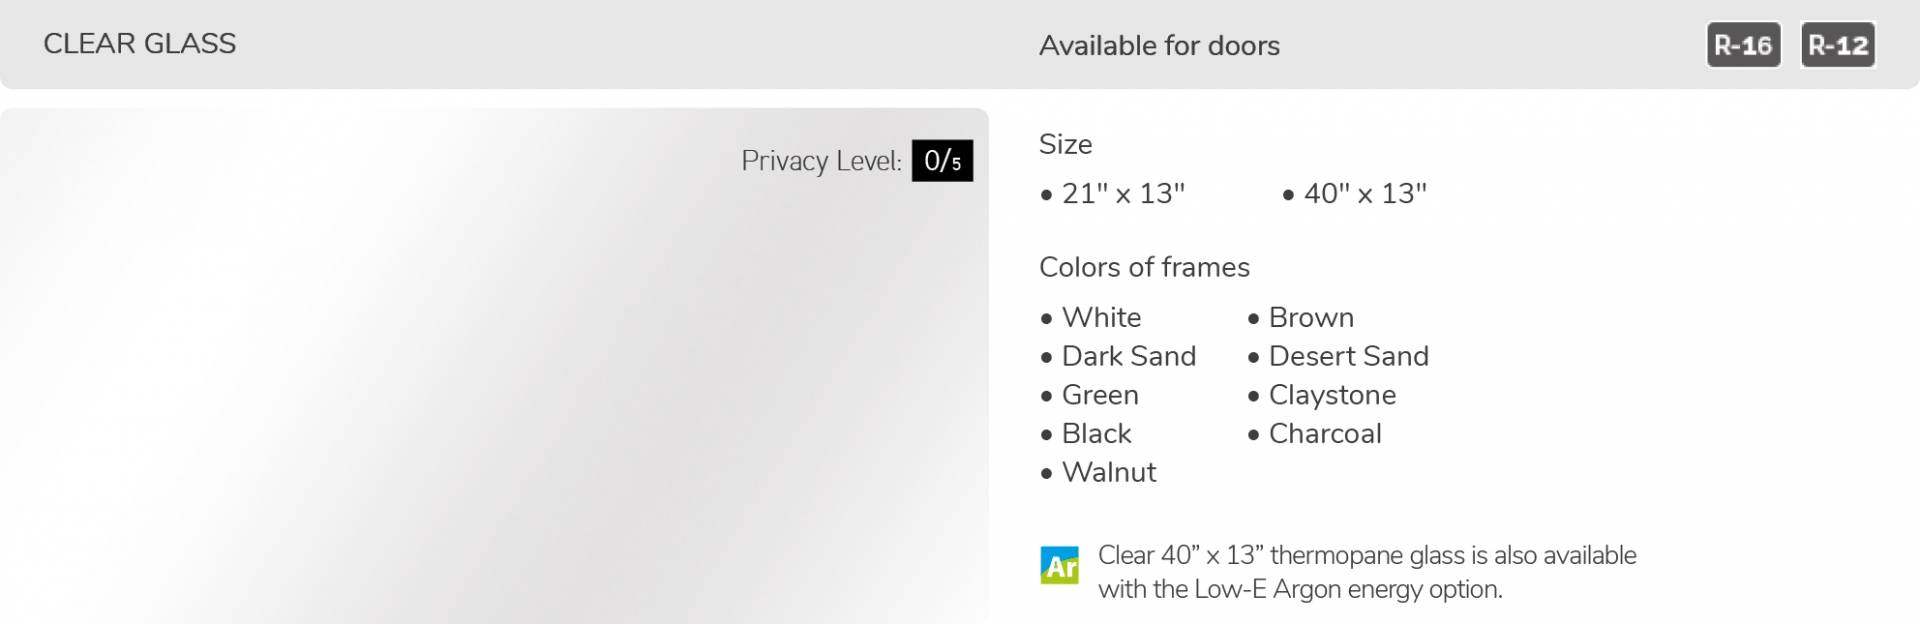 Clear glass, 21' x 13' and 40' x 13', available for doors R-16 and R-12